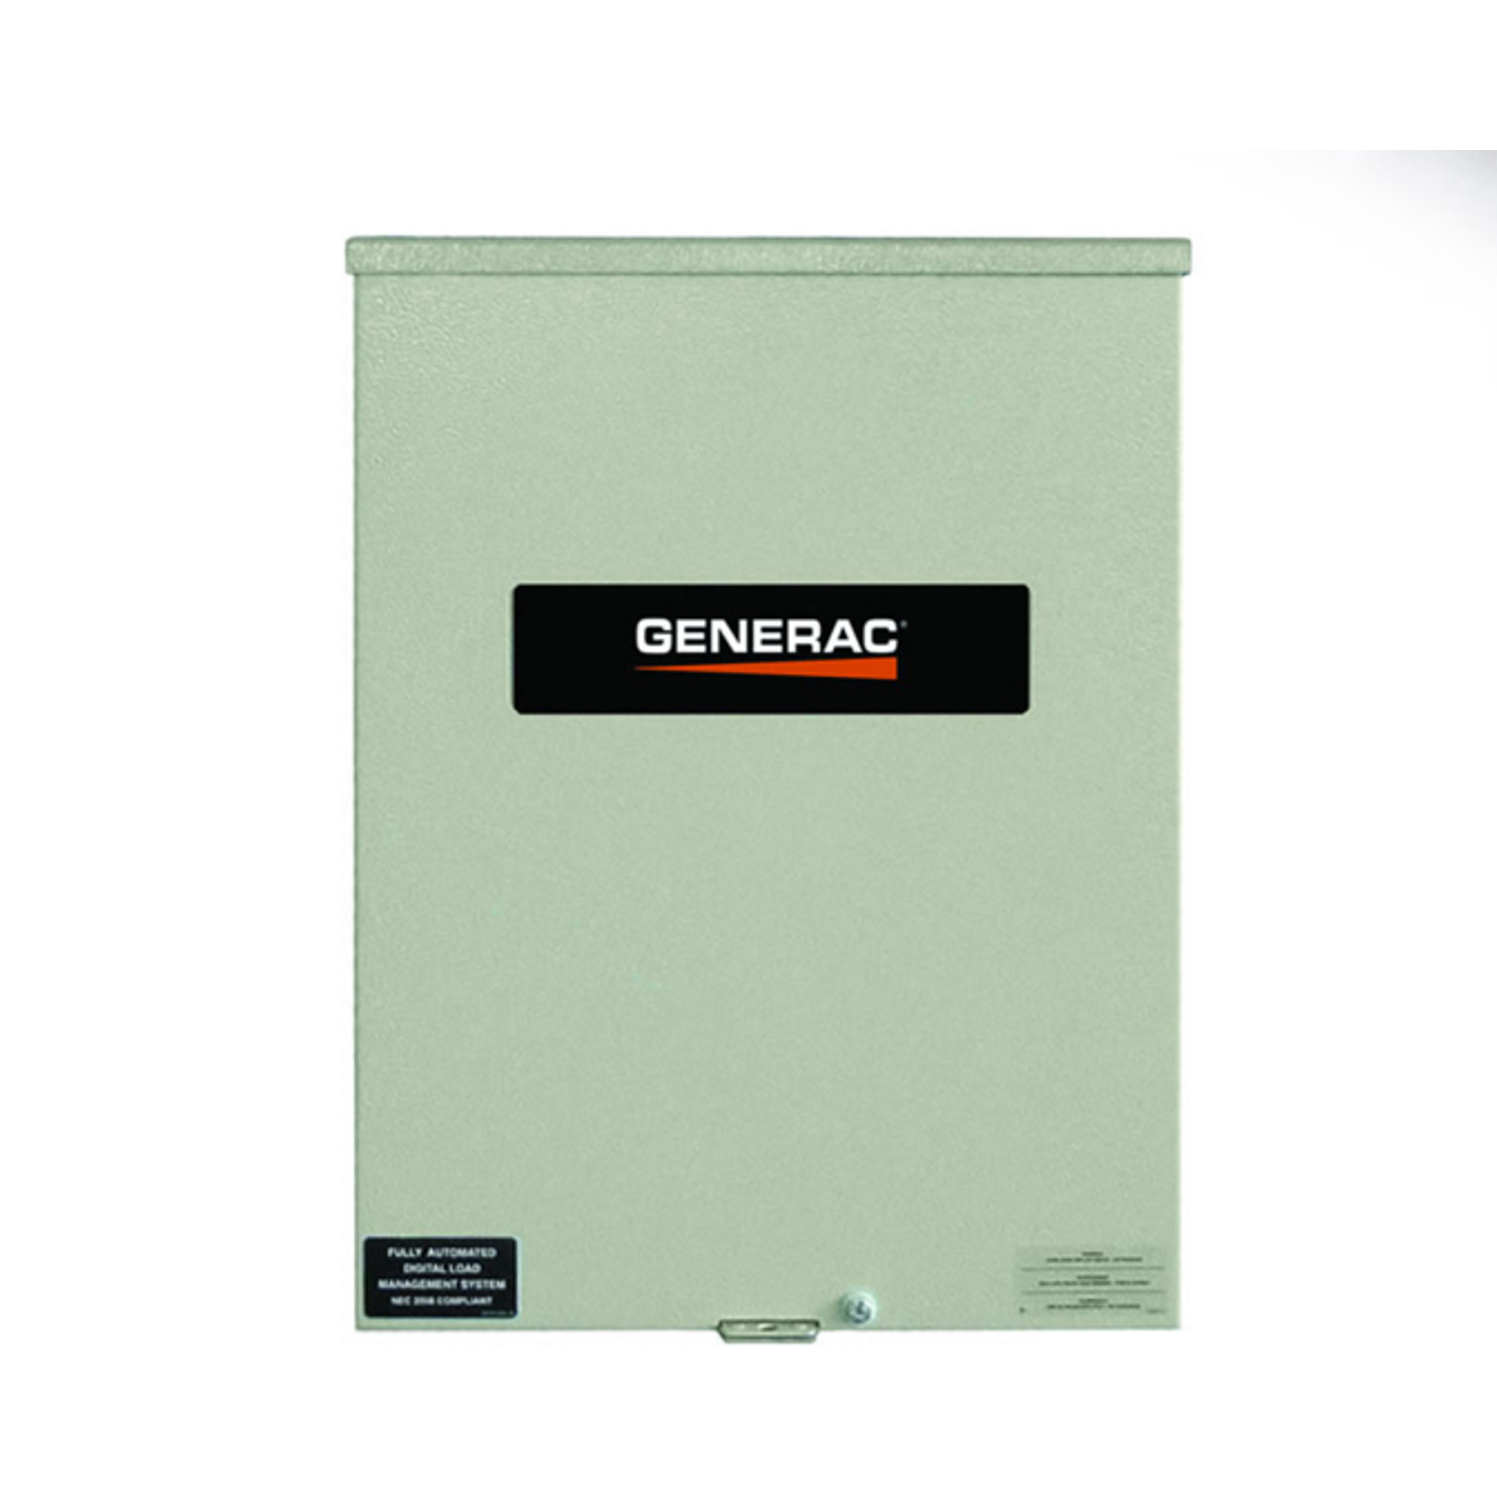 Generac Transfer Switch RTSC100A3